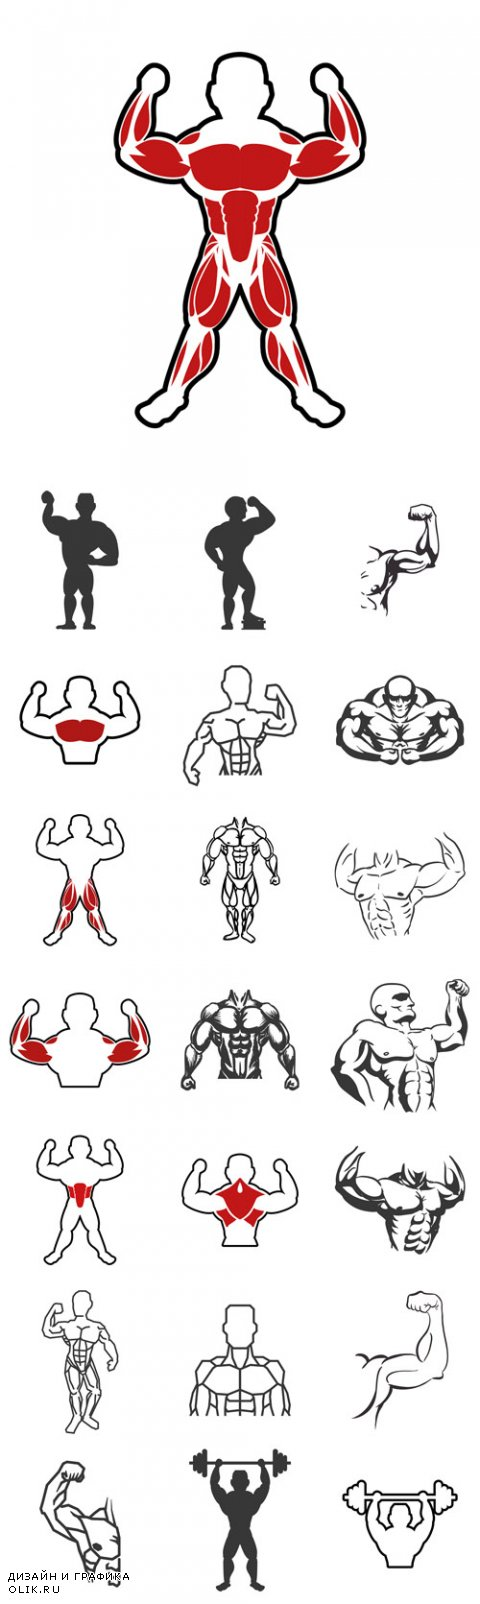 Vector Healthy lifestyle and bodybuilder concept represented by Muscle man icon